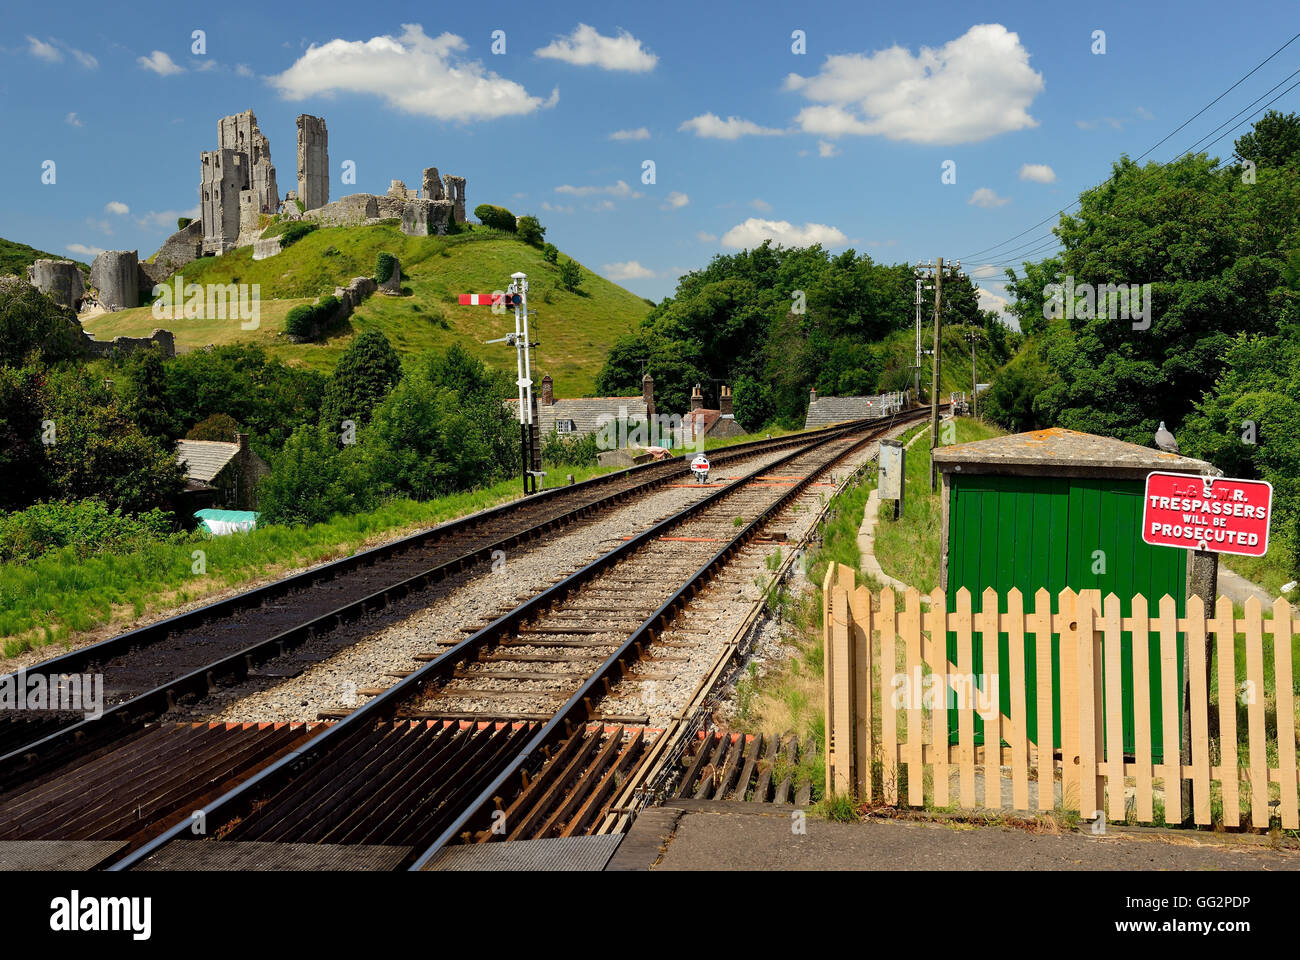 Corfe Castle beside the Swanage Railway. (Seen from the station platform). - Stock Image